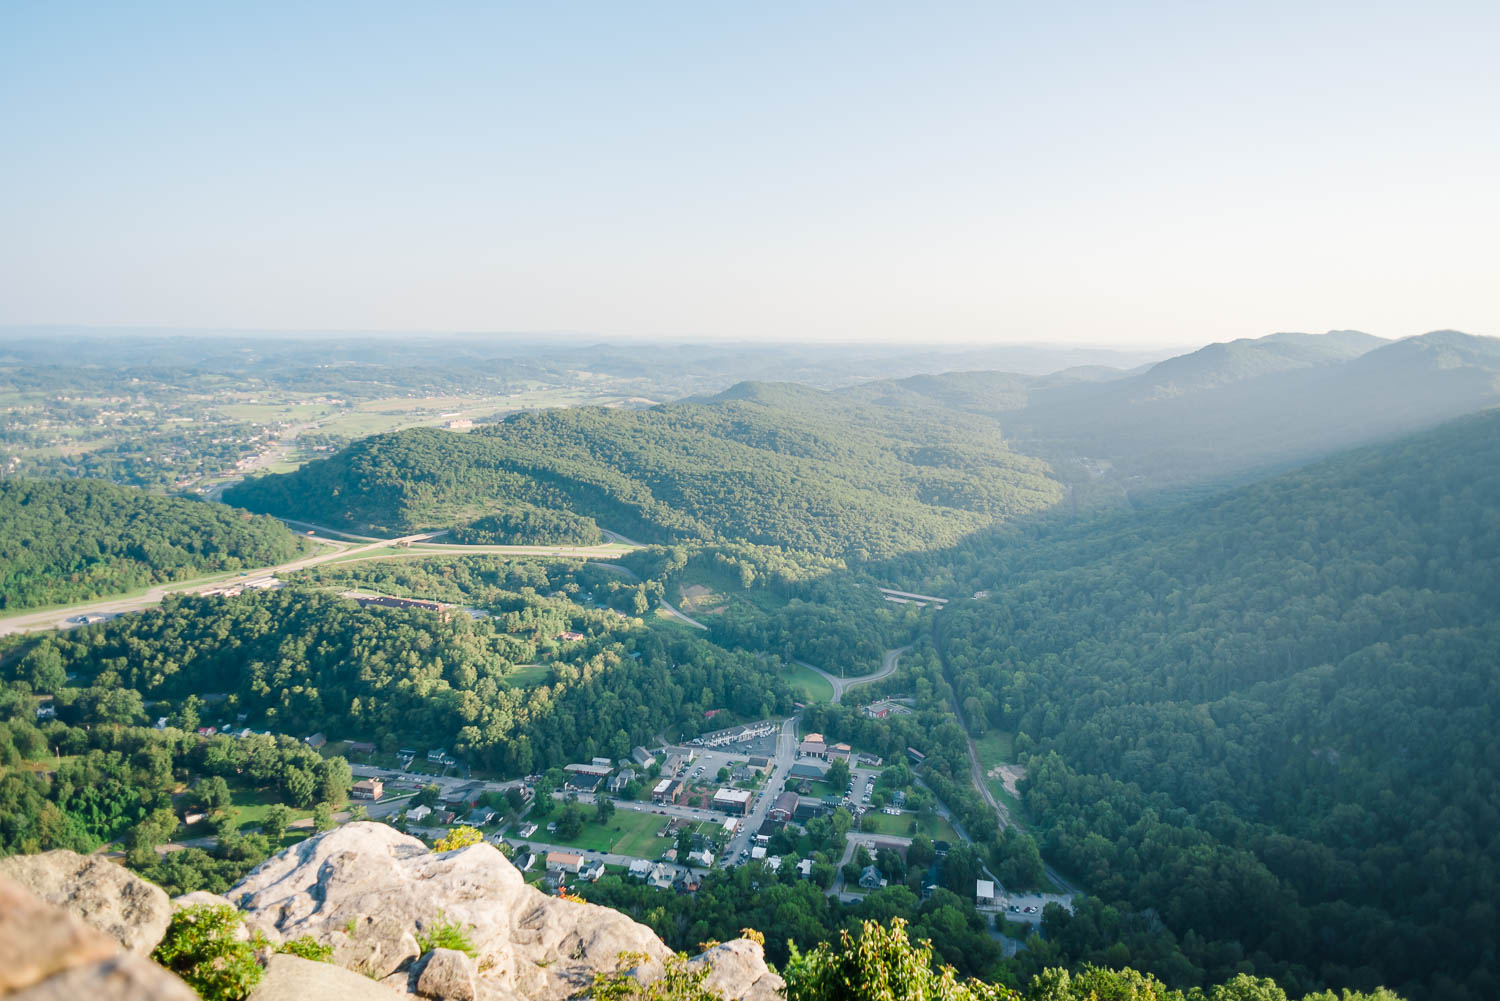 The city of Cumberland Gap seen from above at the pinnacle overlook in Middlesboro KY